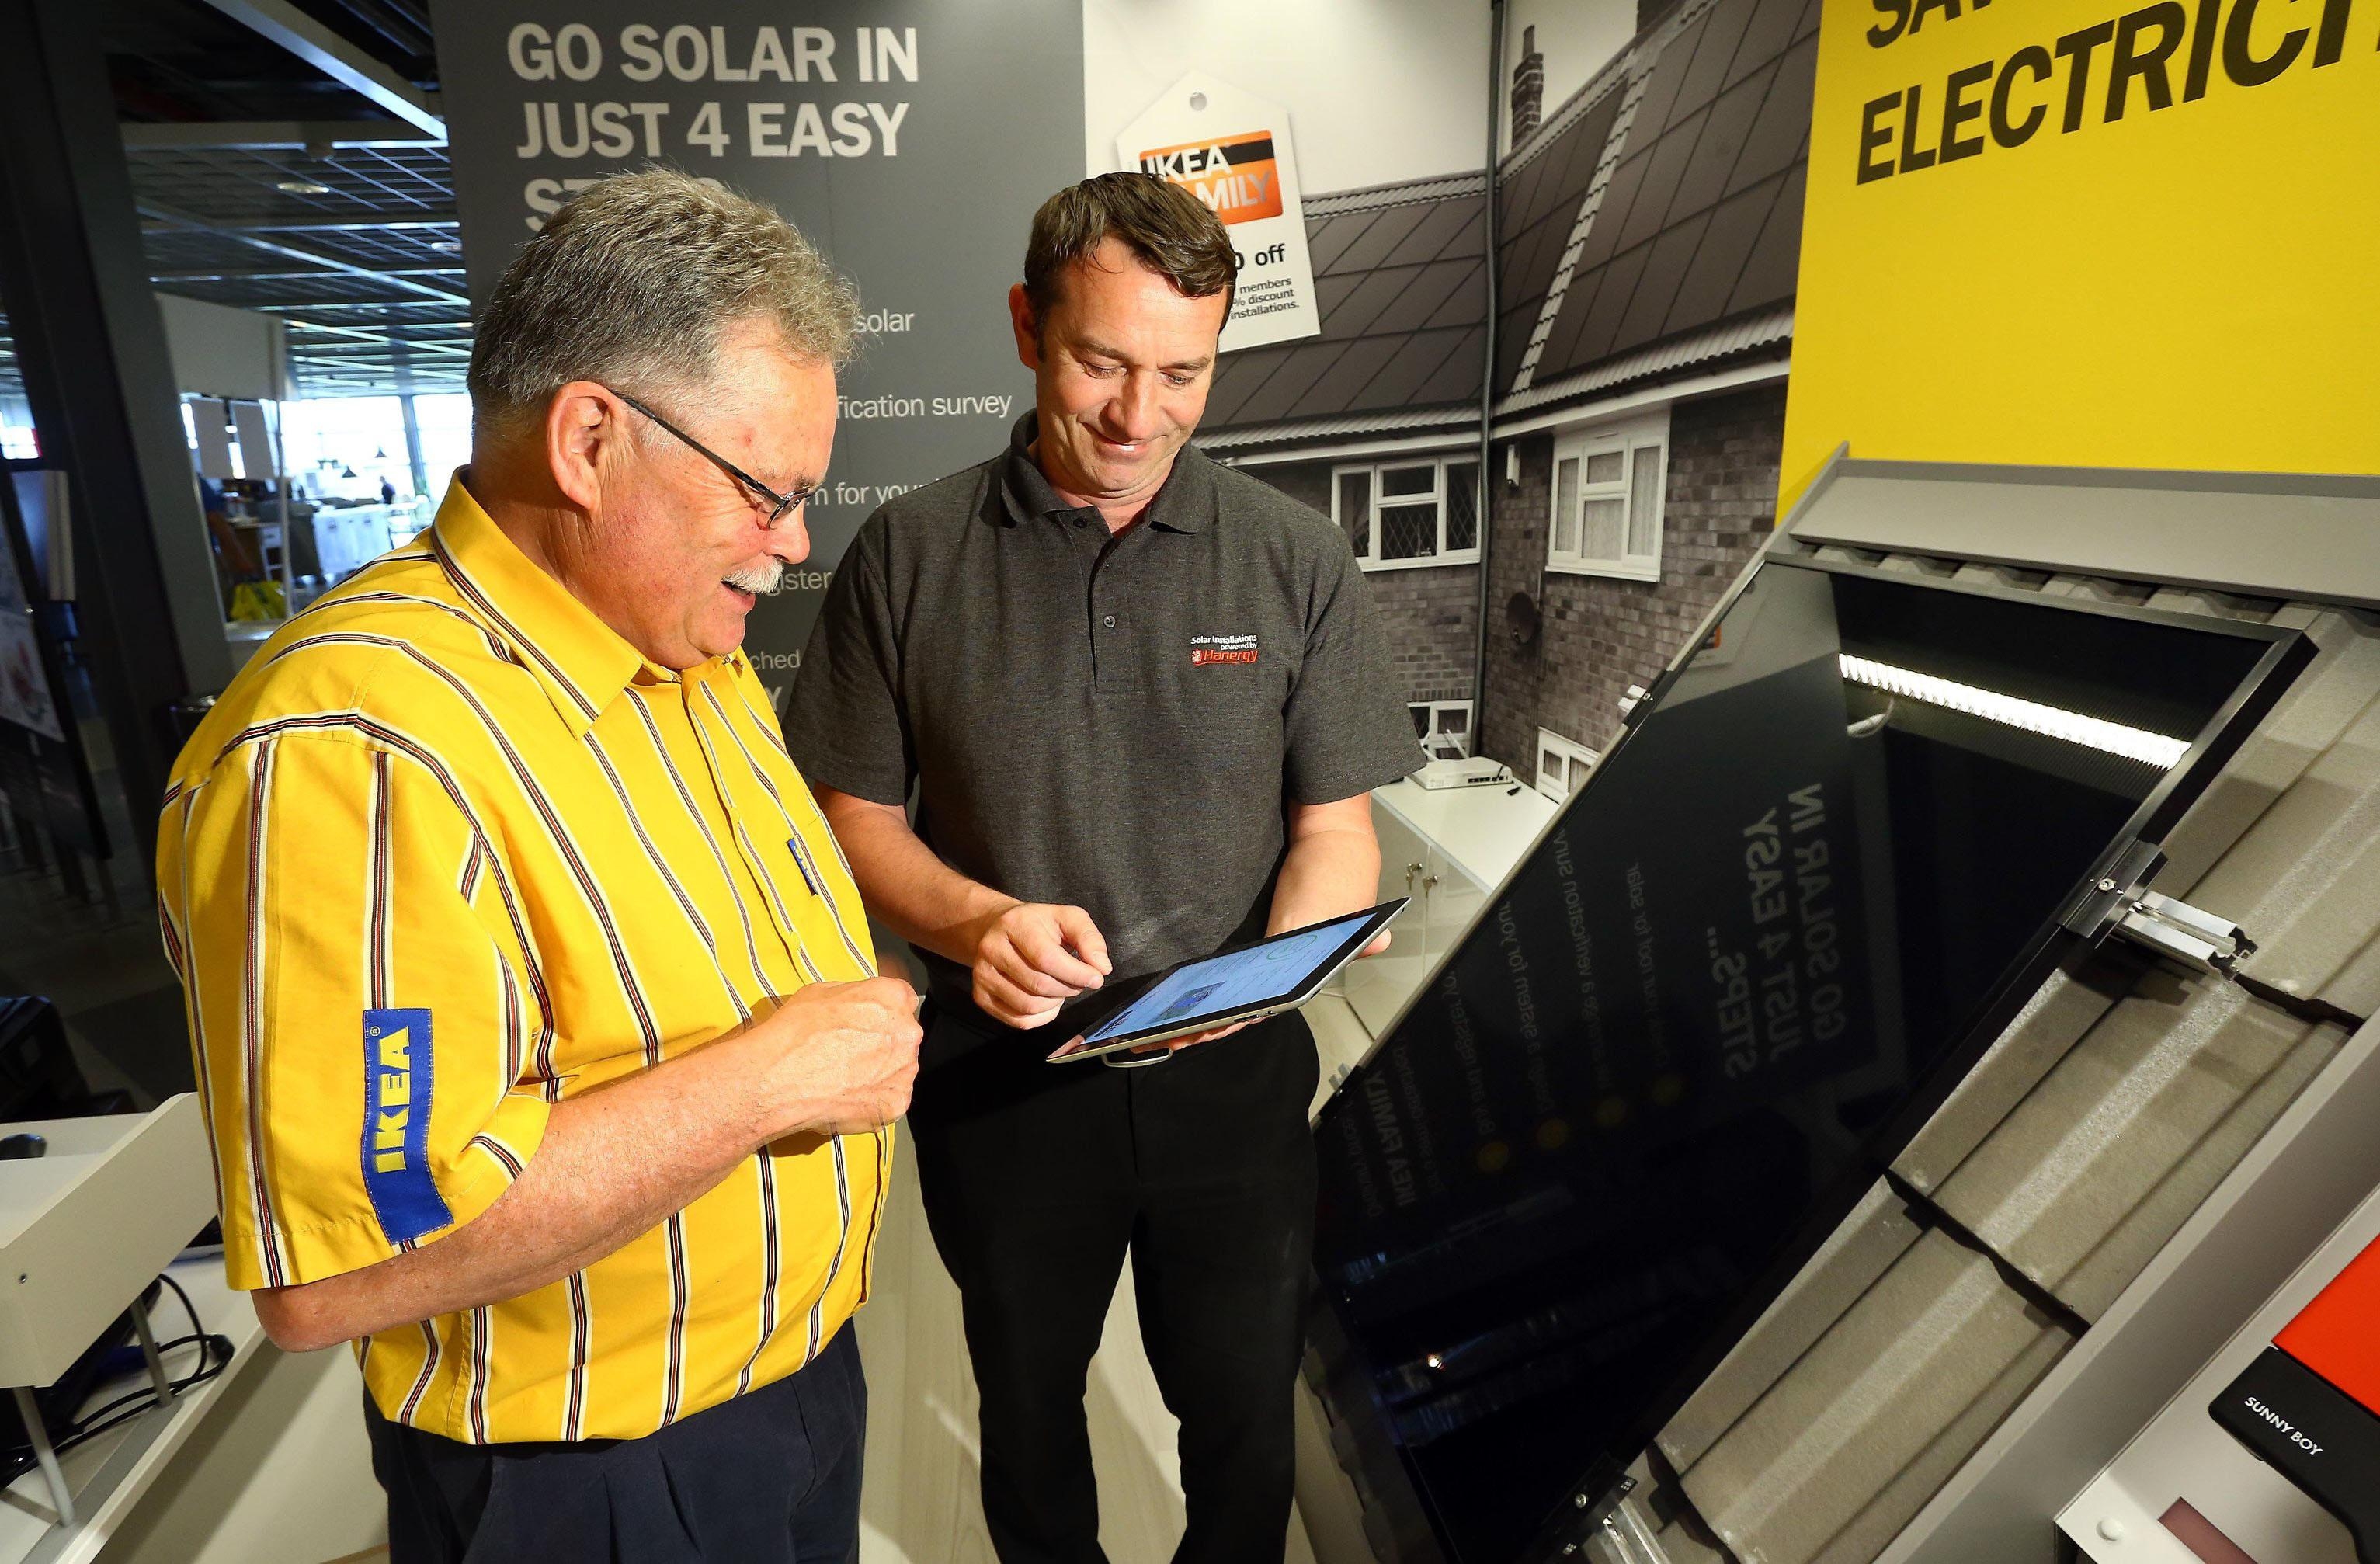 Belfast Store Launches Solar Energy Service